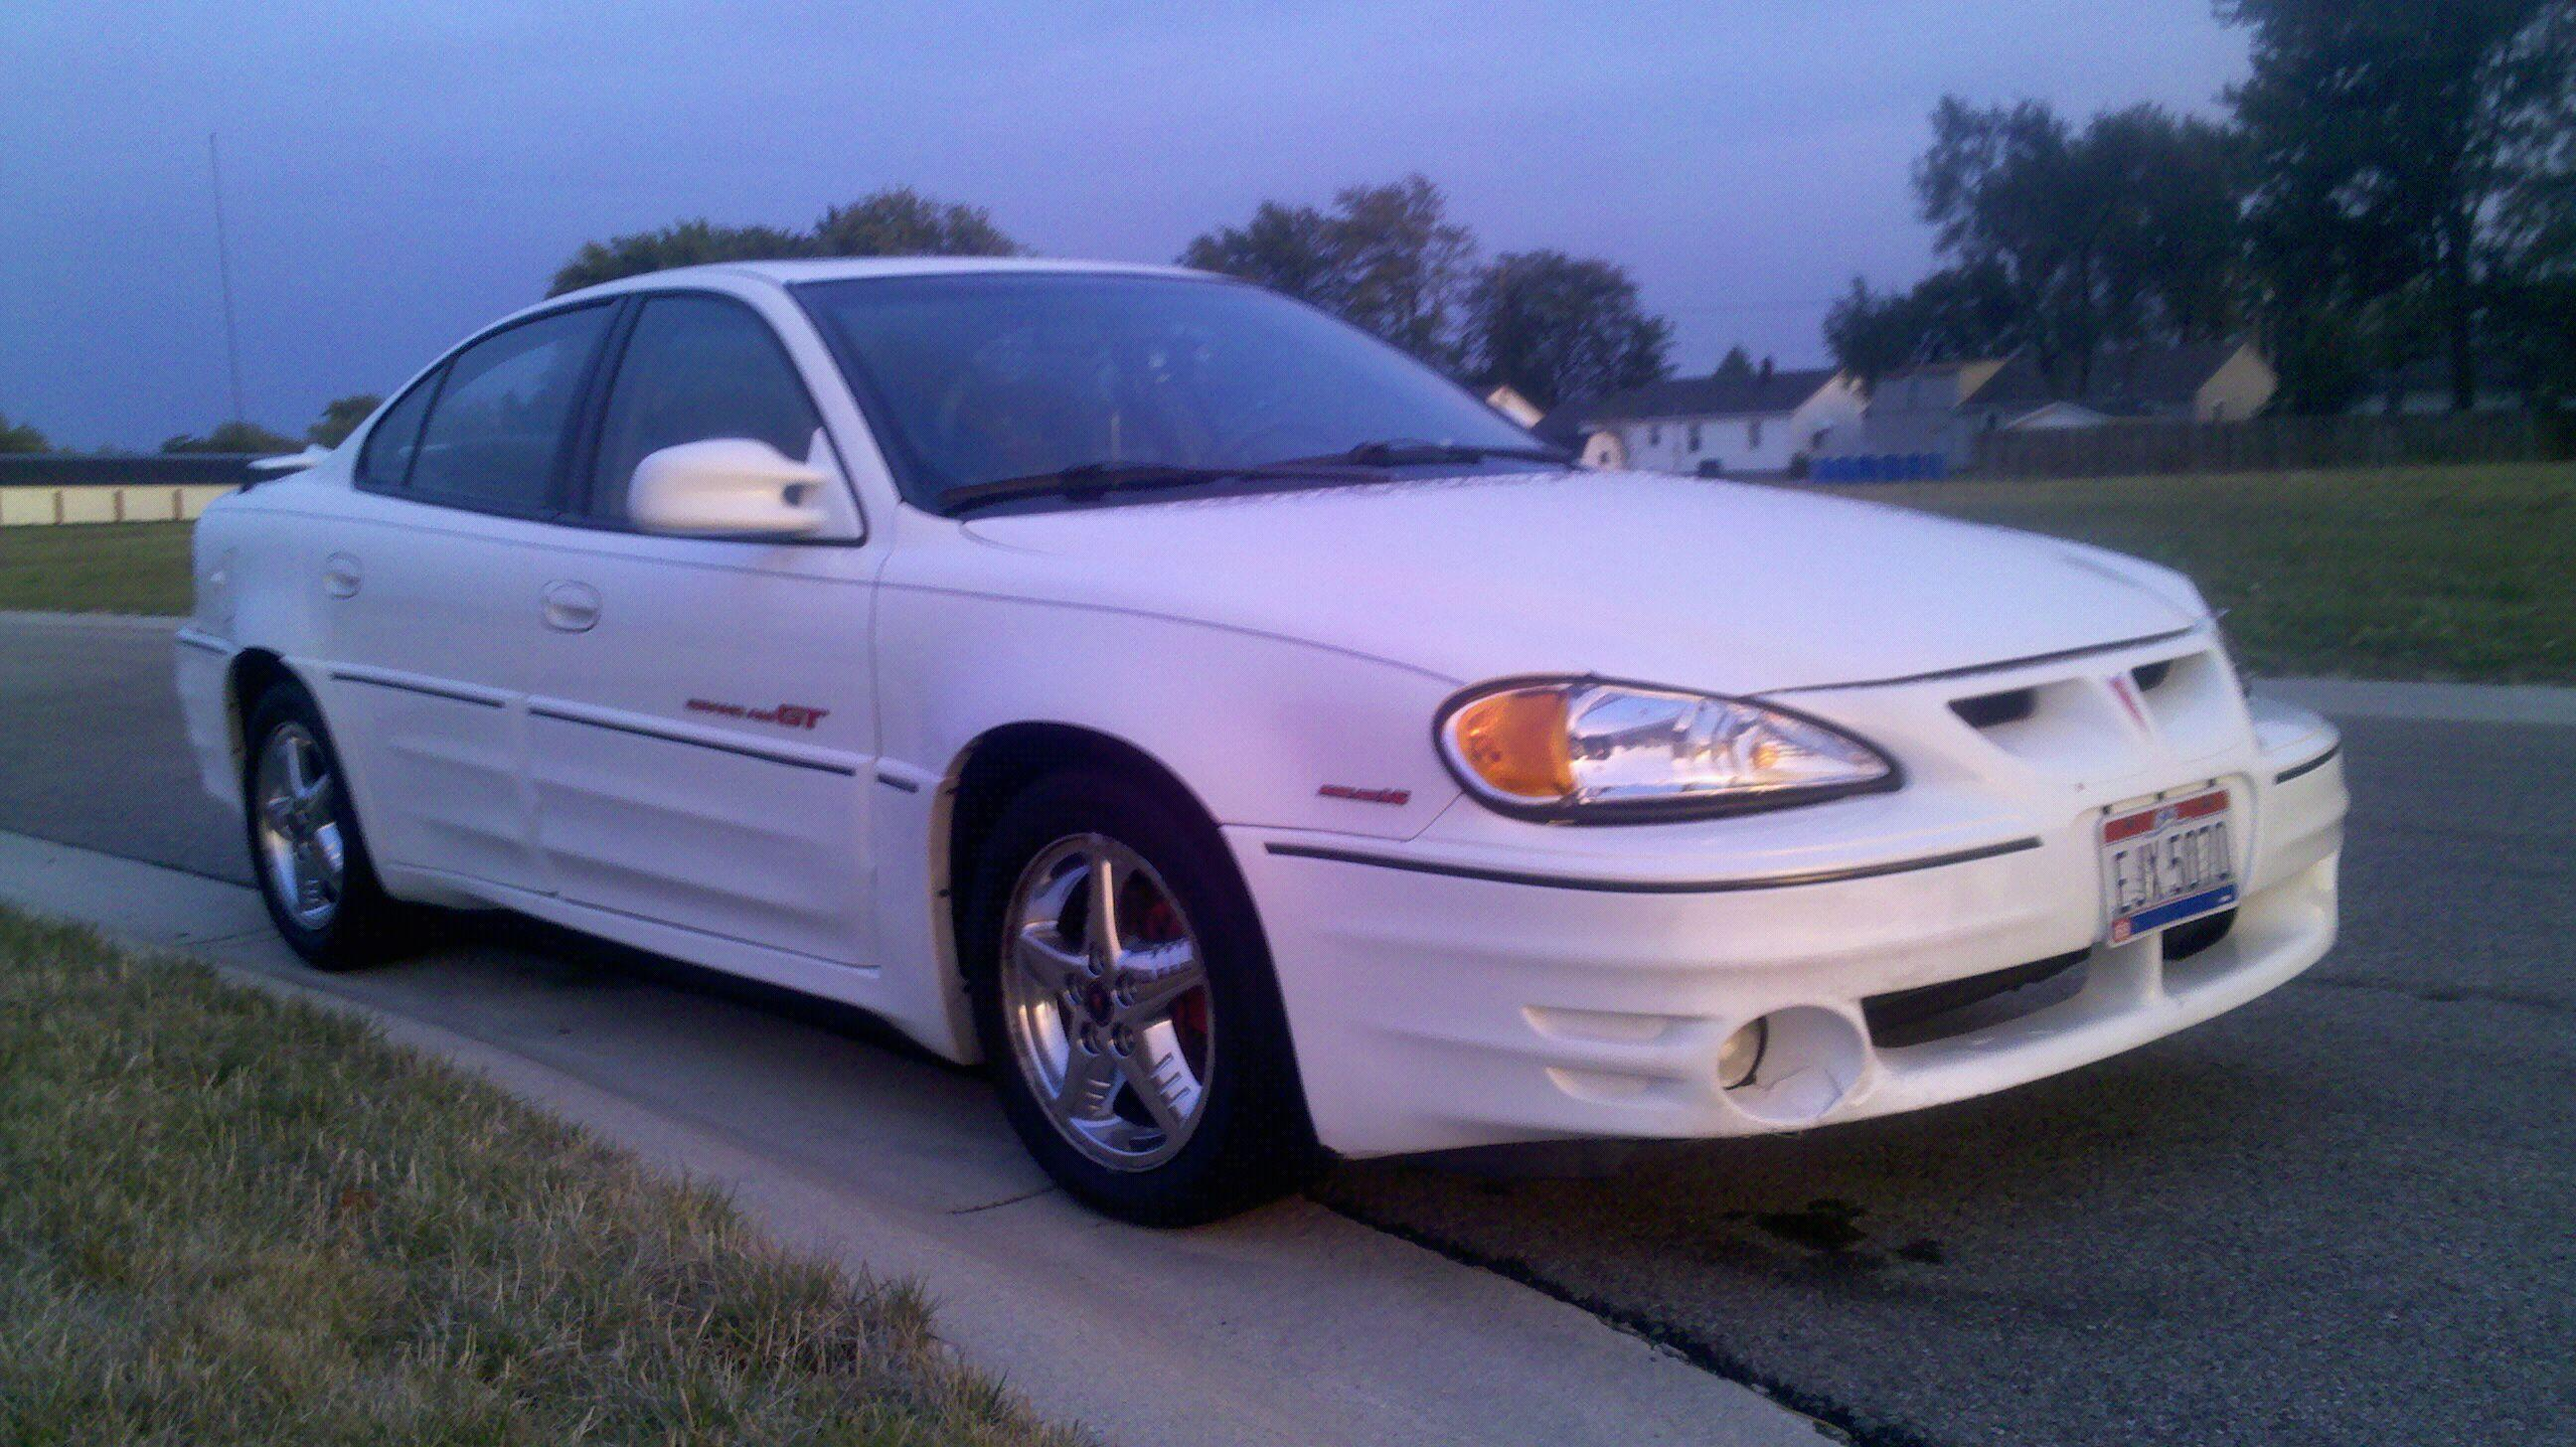 whitelighting10 2000 pontiac grand amgt sedan 4d specs photos modification info at cardomain cardomain